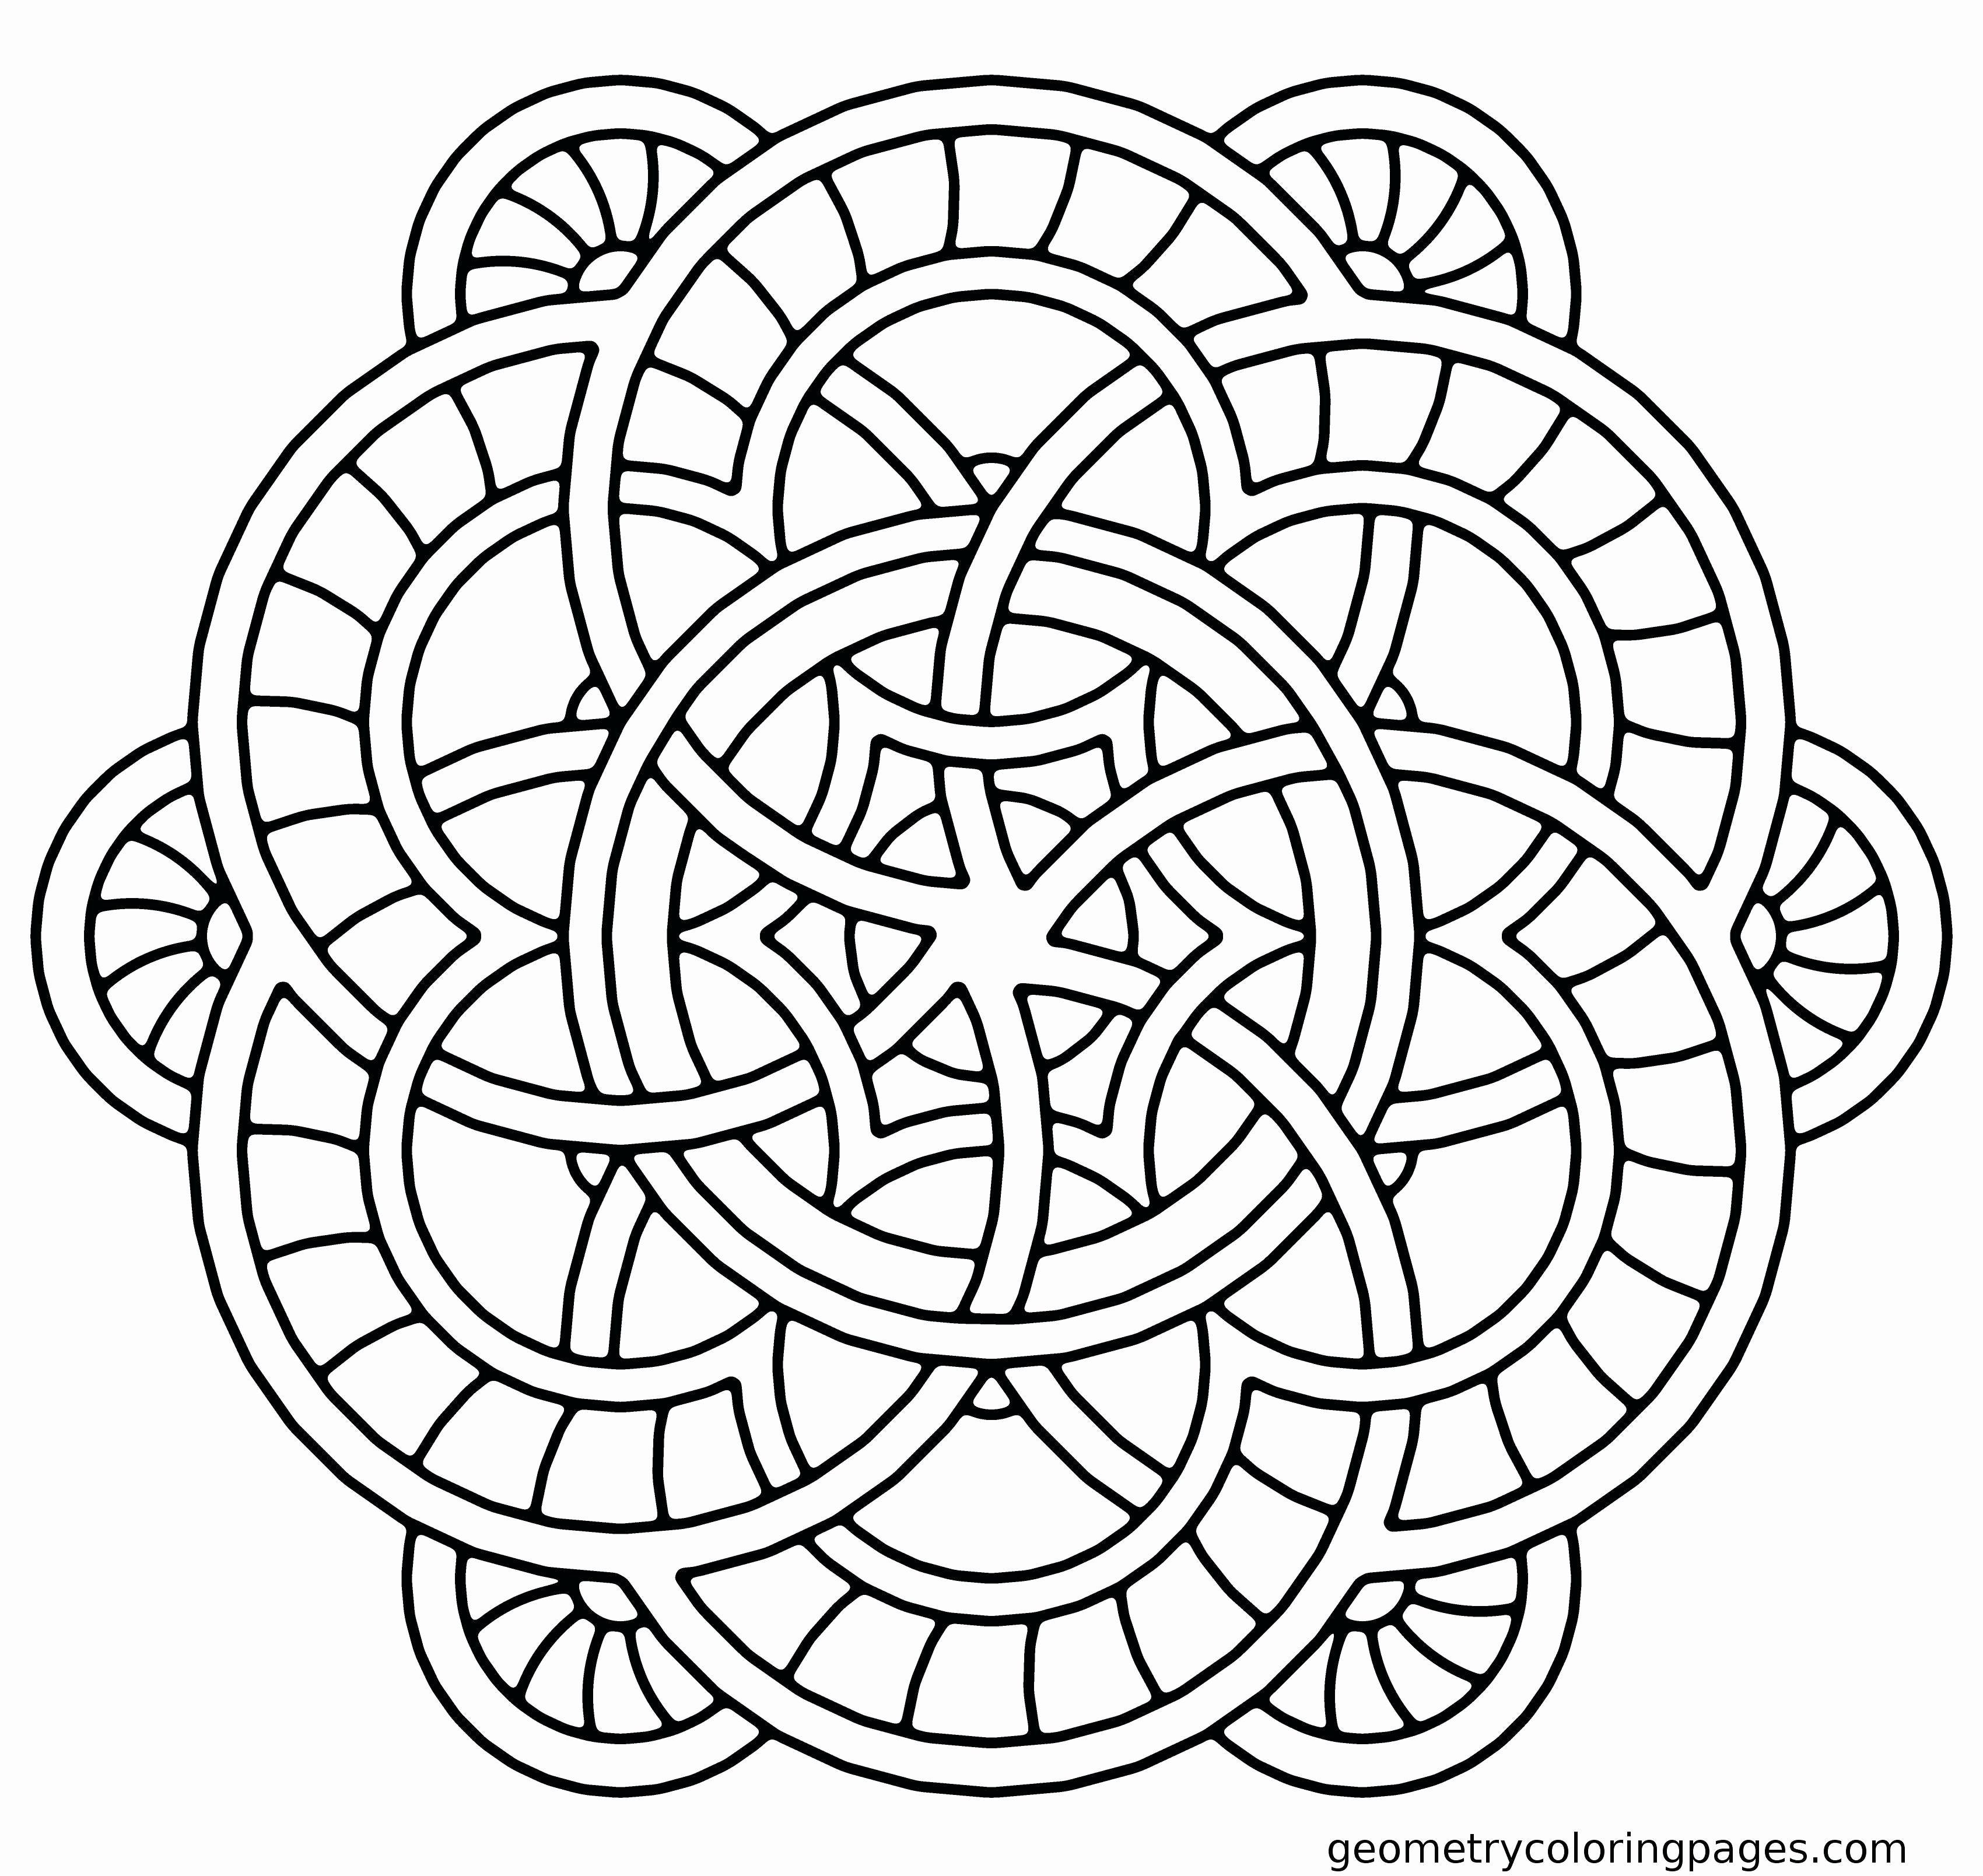 3400x3217 Coloring Printable Abstract Coloring Pages Good Mandala Imagine